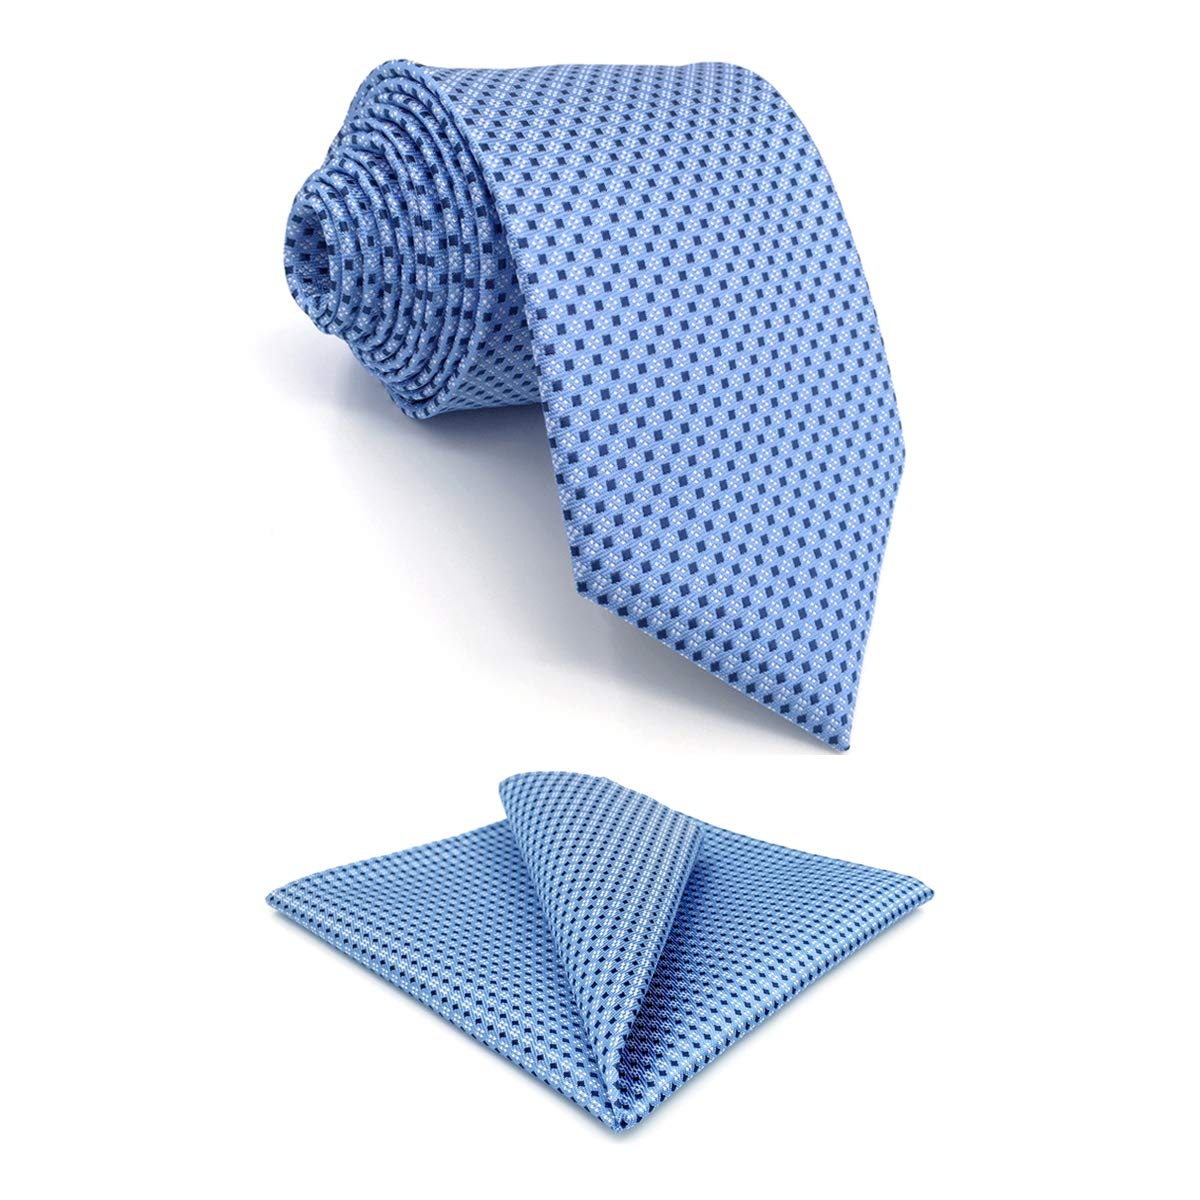 SHLAX&WING Mens Necktie Set with Pocket Square Silk Tie Set New 09